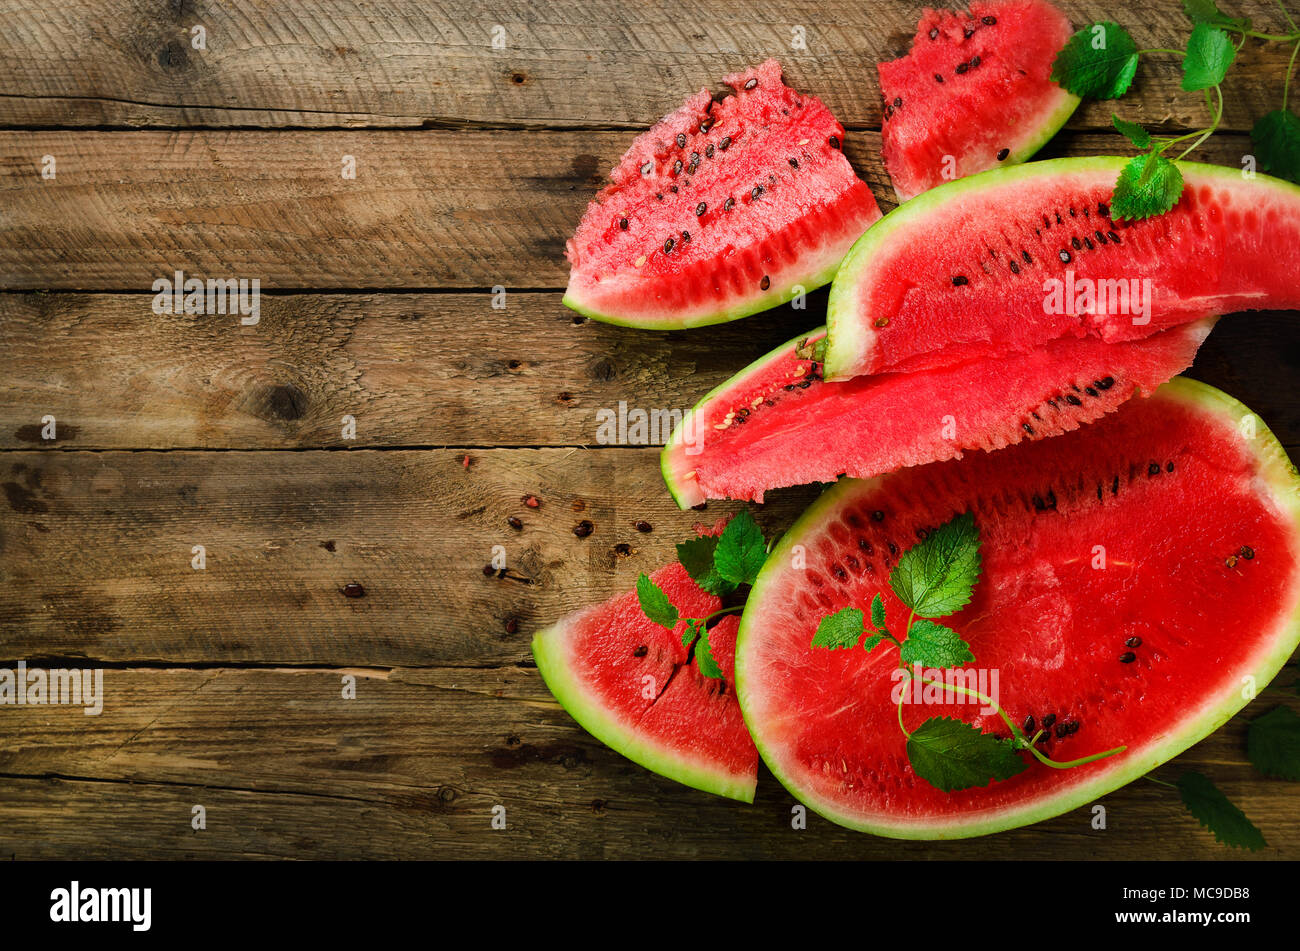 Slices of watermelon with mint leaves on wooden background. Detox and vegetarian concept. Top view, flat lay, copy space - Stock Image